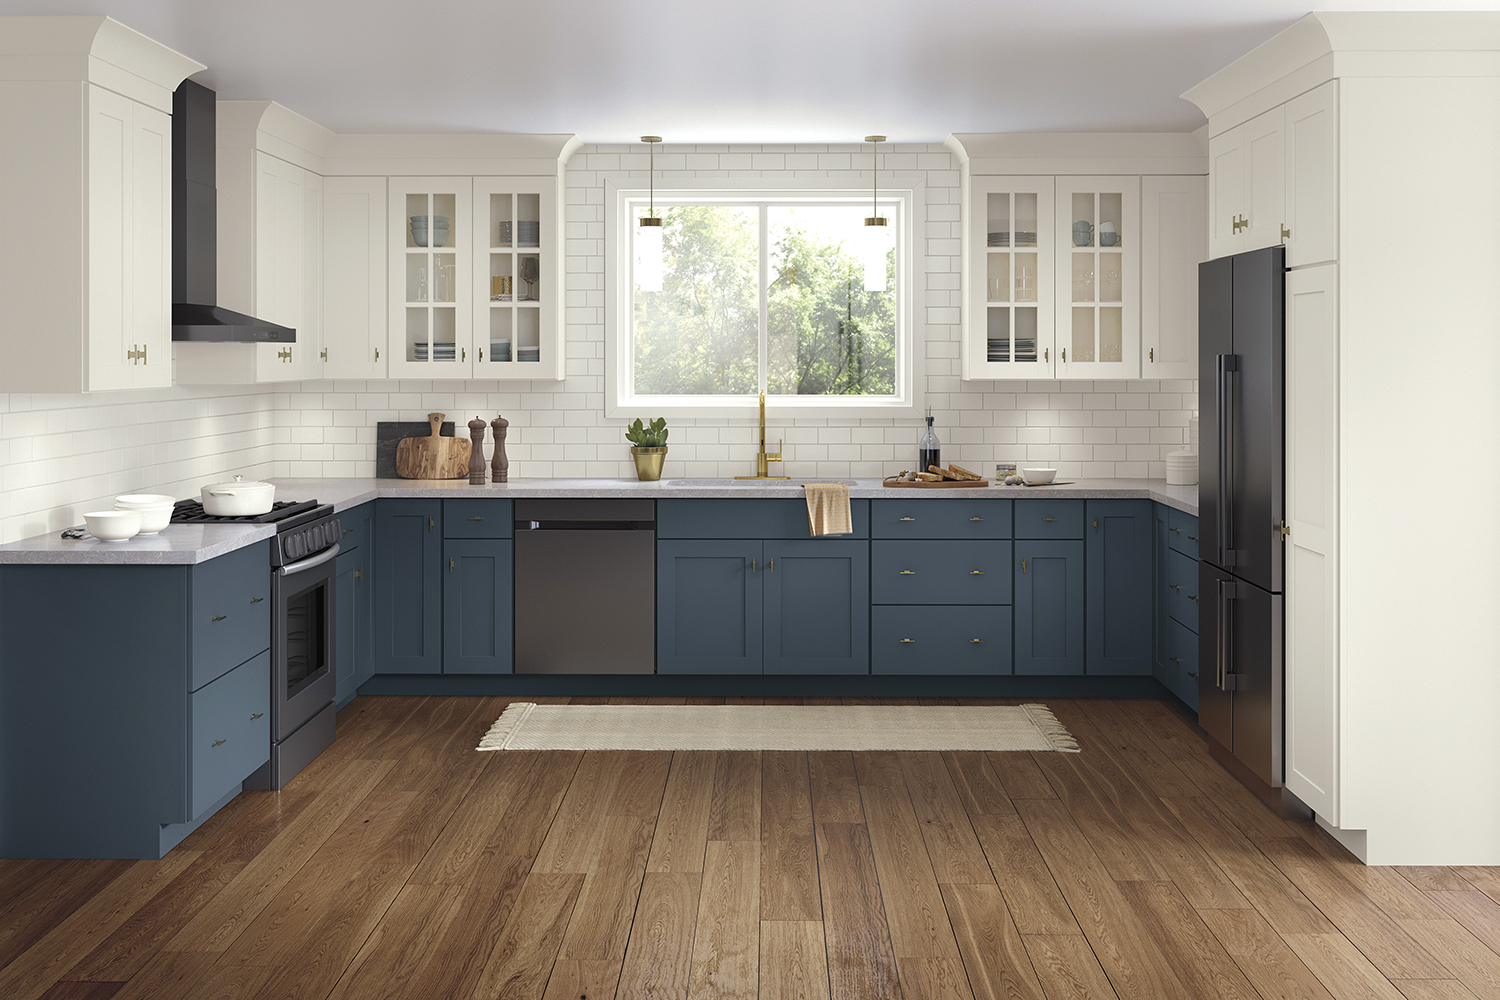 Color Trends for 2020 to Make Kitchens, Bathrooms Pop - WILMA magazine